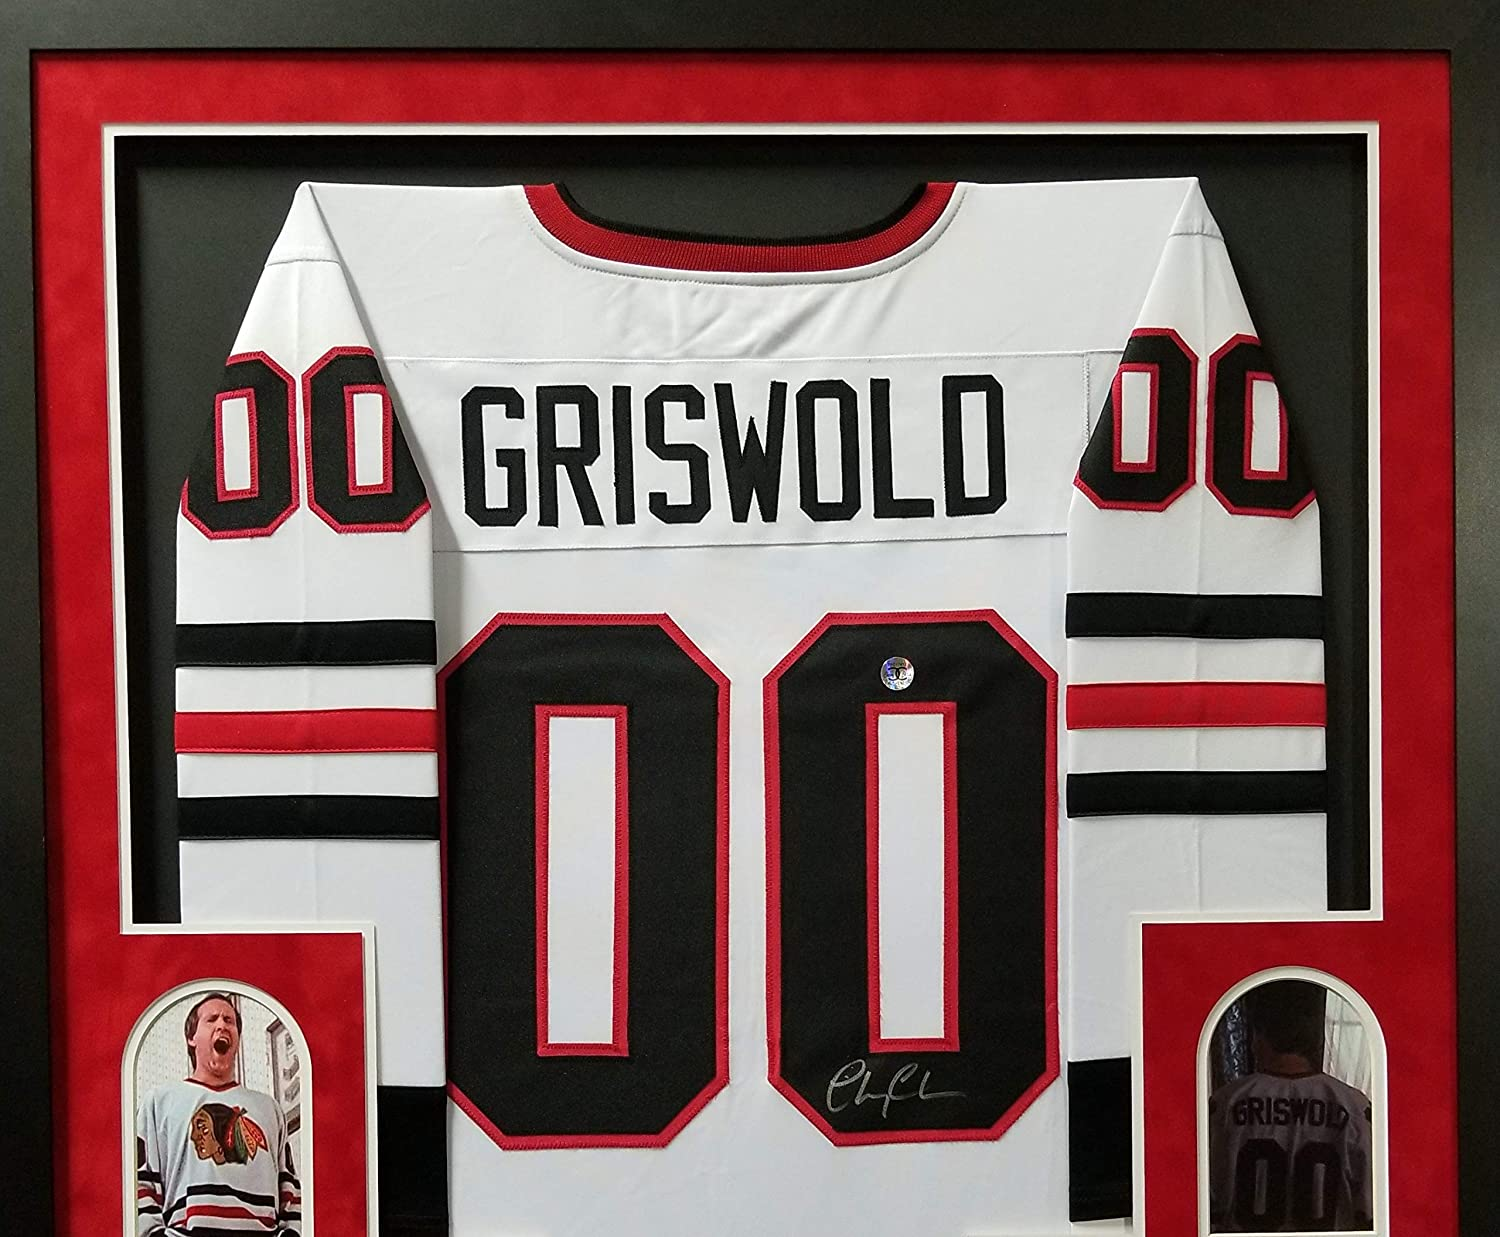 Chevy Chase Clark Griswold Chicago Blackhawks Autograph Signed Christmas Vacation The Movie Custom Framed Jersey Suede Matted Beckett Chevy Chase Hologram Certified At Amazon S Sports Collectibles Store